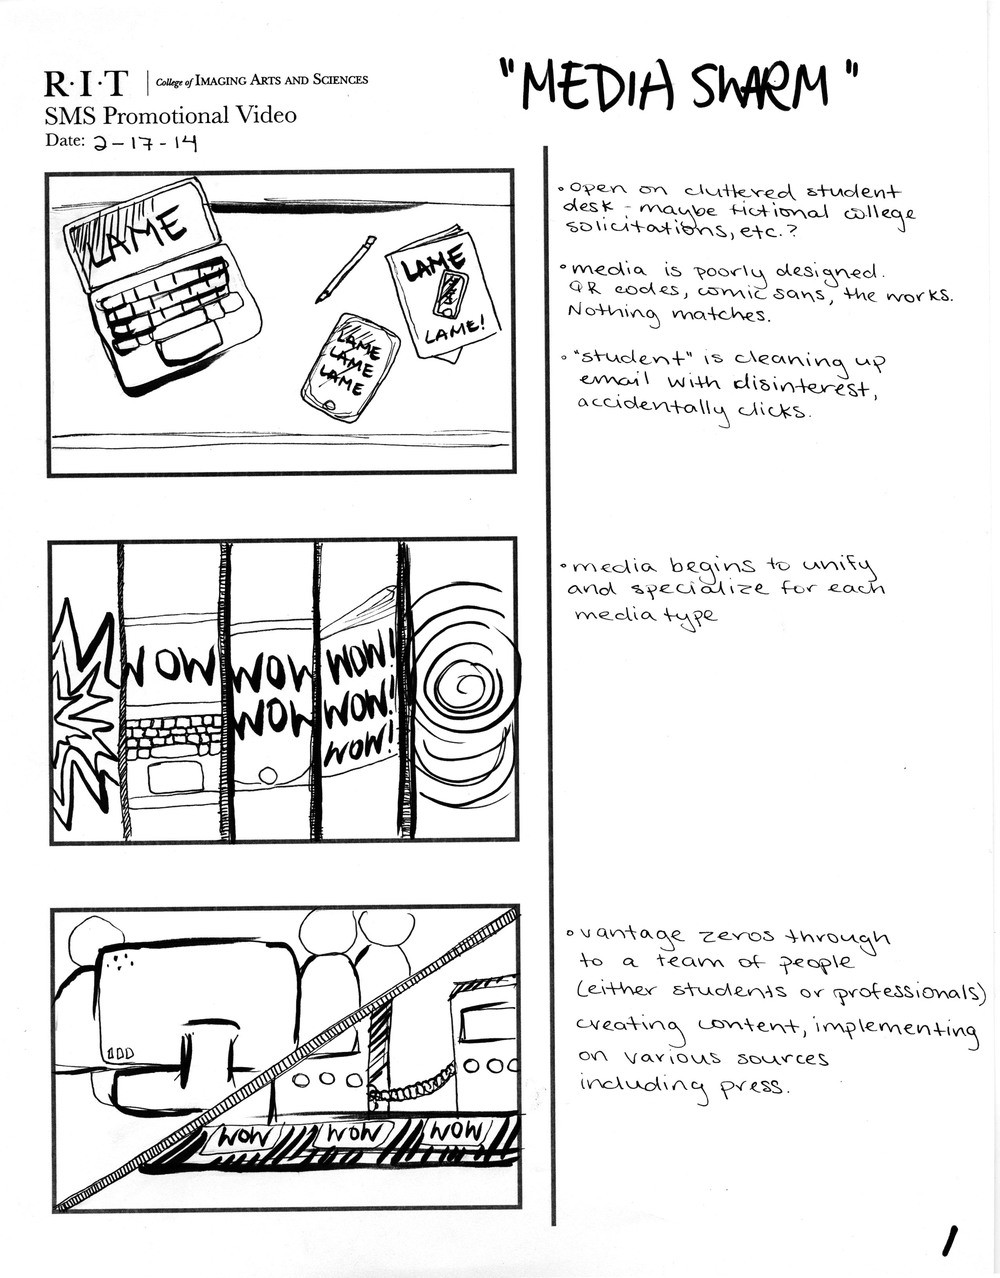 Alternate storyboard concept, based on original department pitch.